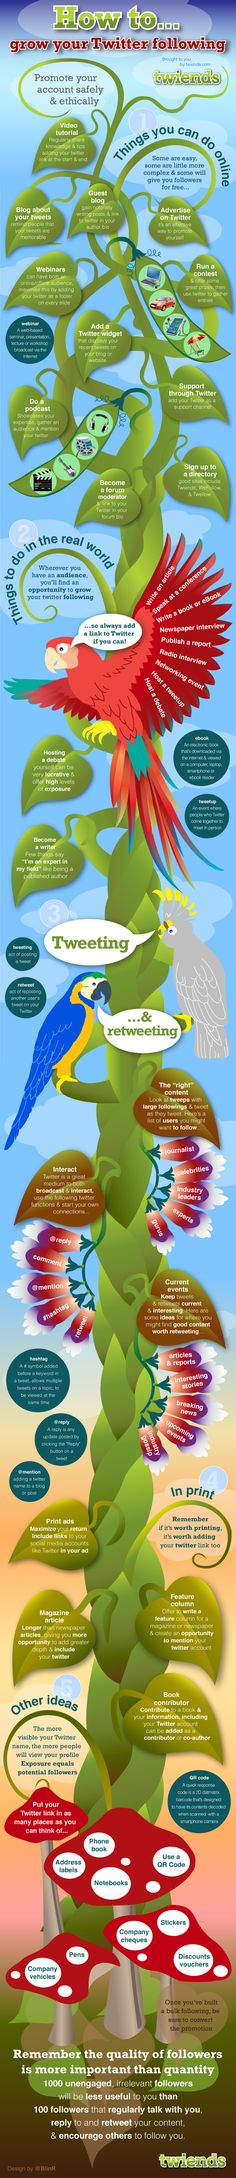 How to grow your Twitter following INFOGRAPHIC.